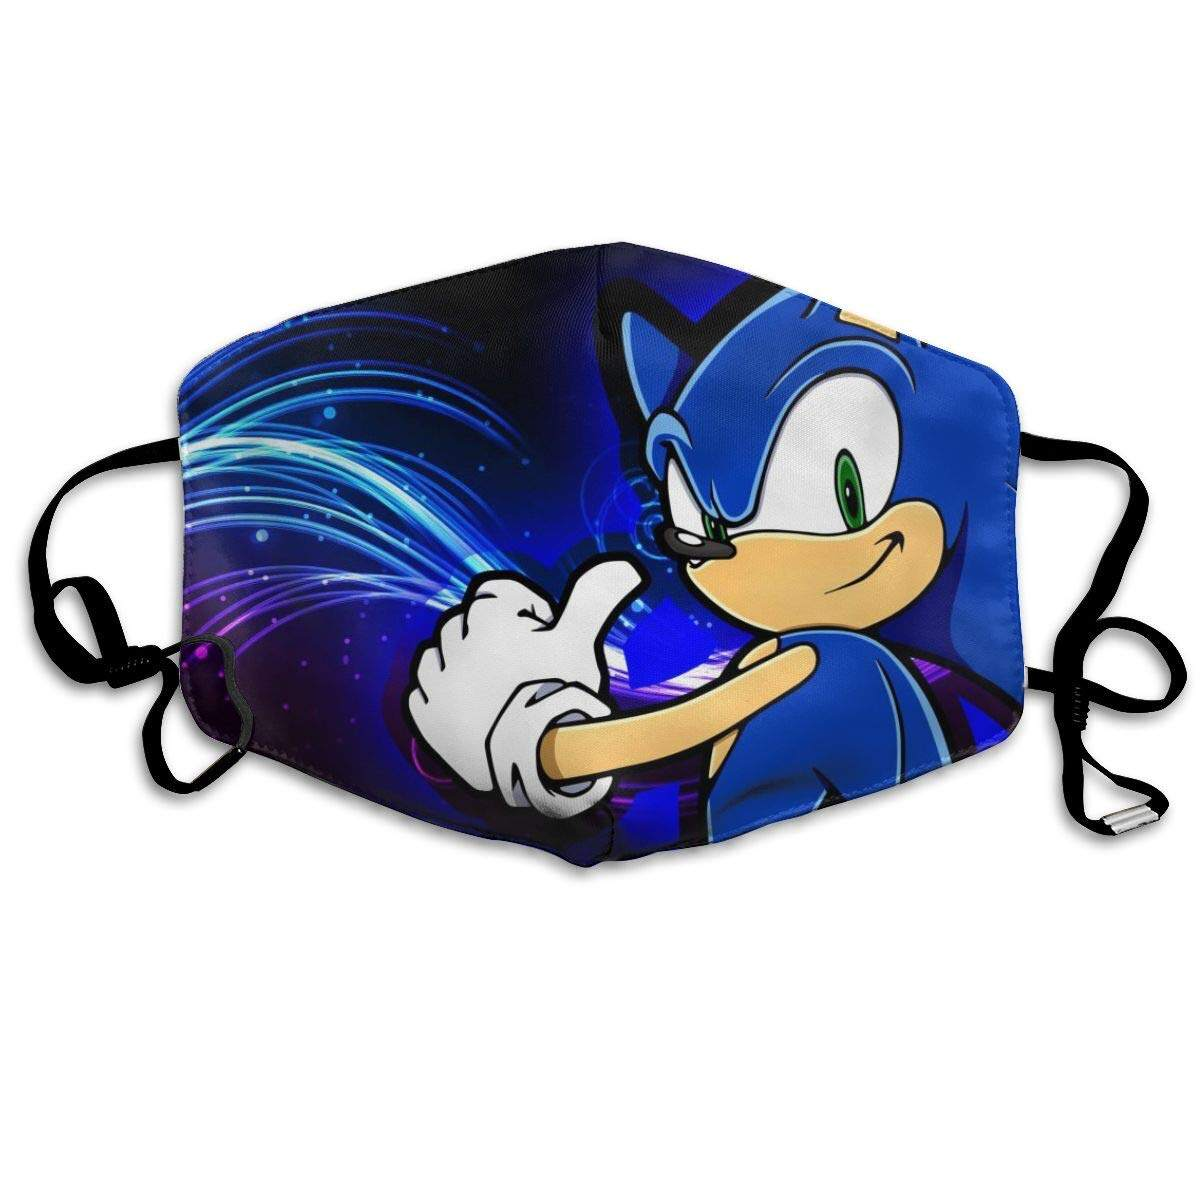 Face M Asks Sonic Hedgehog Breathable Dust Filter M Asks Mouth Cover M Asks With Elastic Ear Loop Lazada Singapore